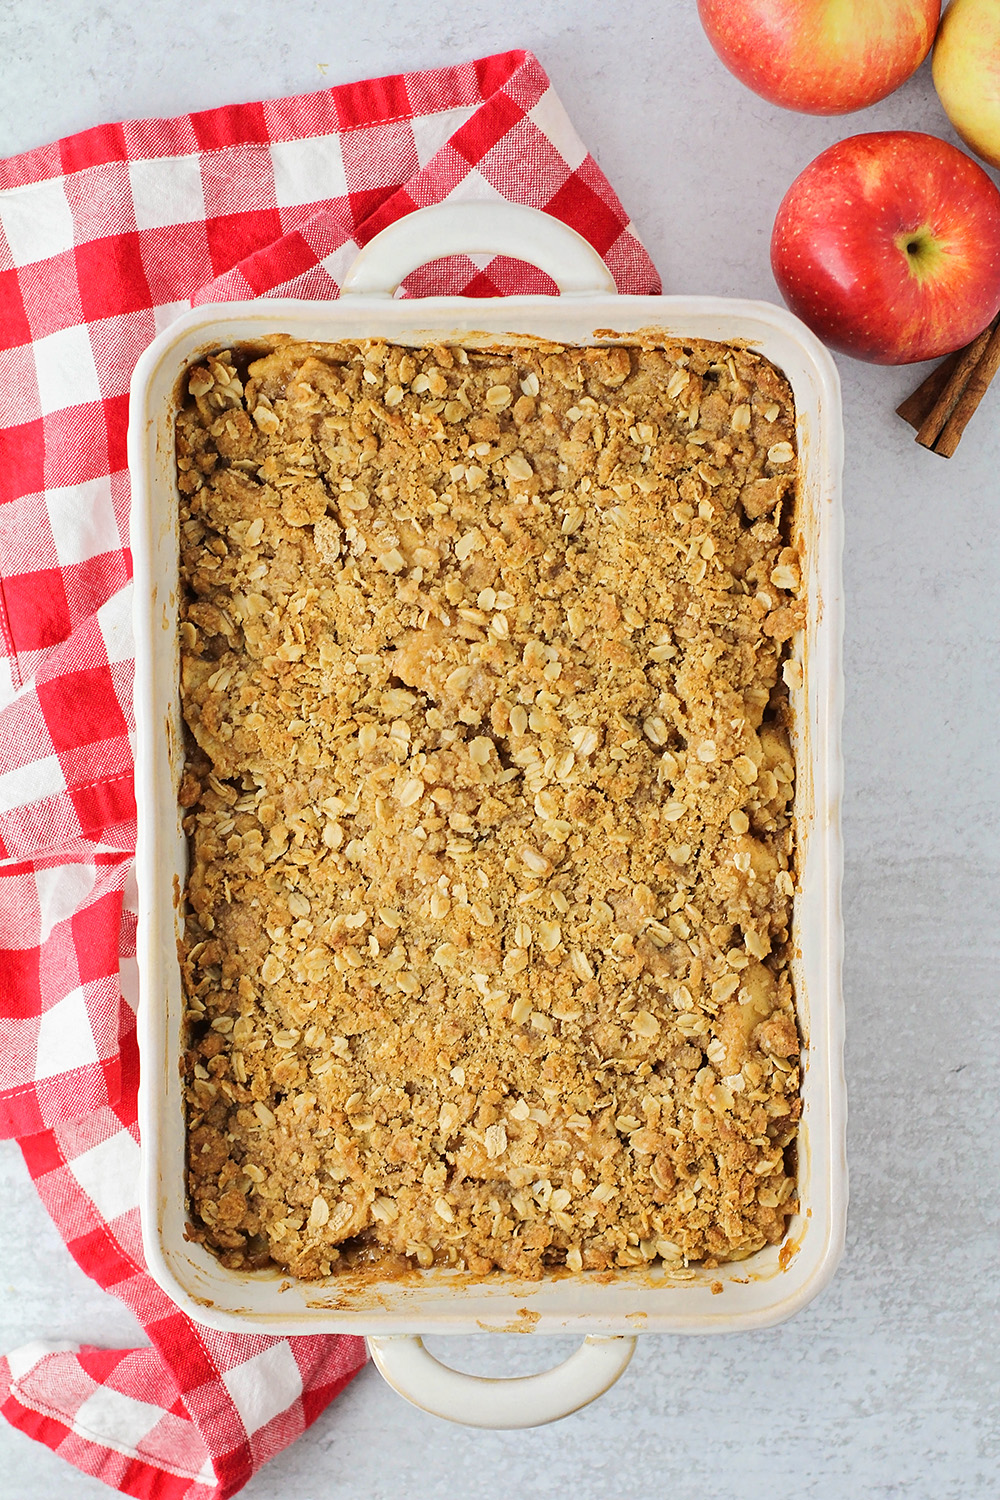 This delicious apple crisp has tender juicy apples topped with buttery and sweet crisp topping. It's the perfect fall dessert!